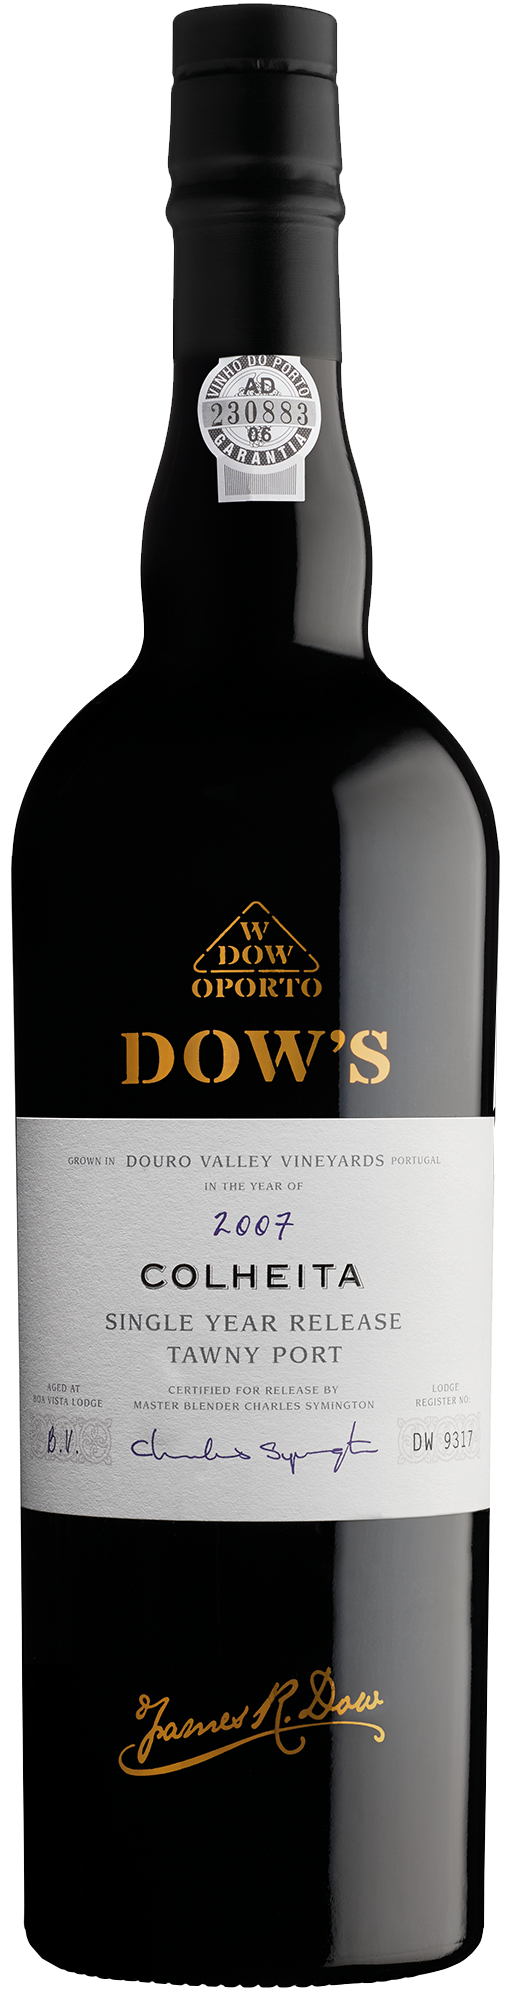 Product Image for DOW'S COLHEITA TAWNY PORT 2007